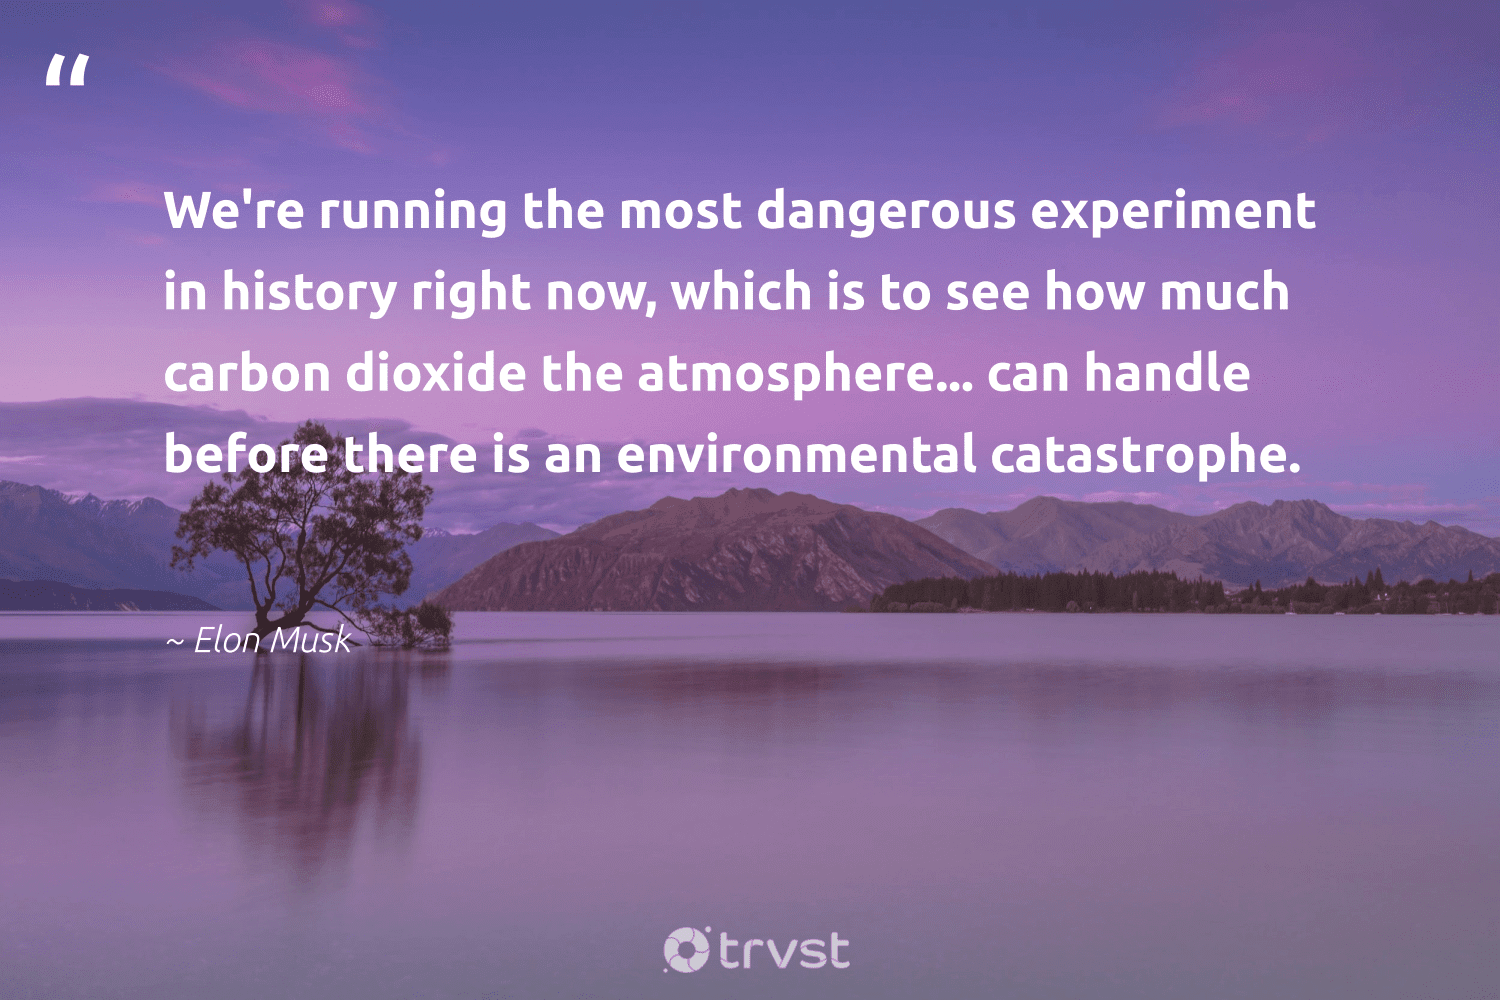 """""""We're running the most dangerous experiment in history right now, which is to see how much carbon dioxide the atmosphere... can handle before there is an environmental catastrophe.""""  - Elon Musk #trvst #quotes #environmental #carbon #environmentallyfriendly #changetheworld #volunteer #gogreen #wildlifeplanet #thinkgreen #giveback #socialchange"""